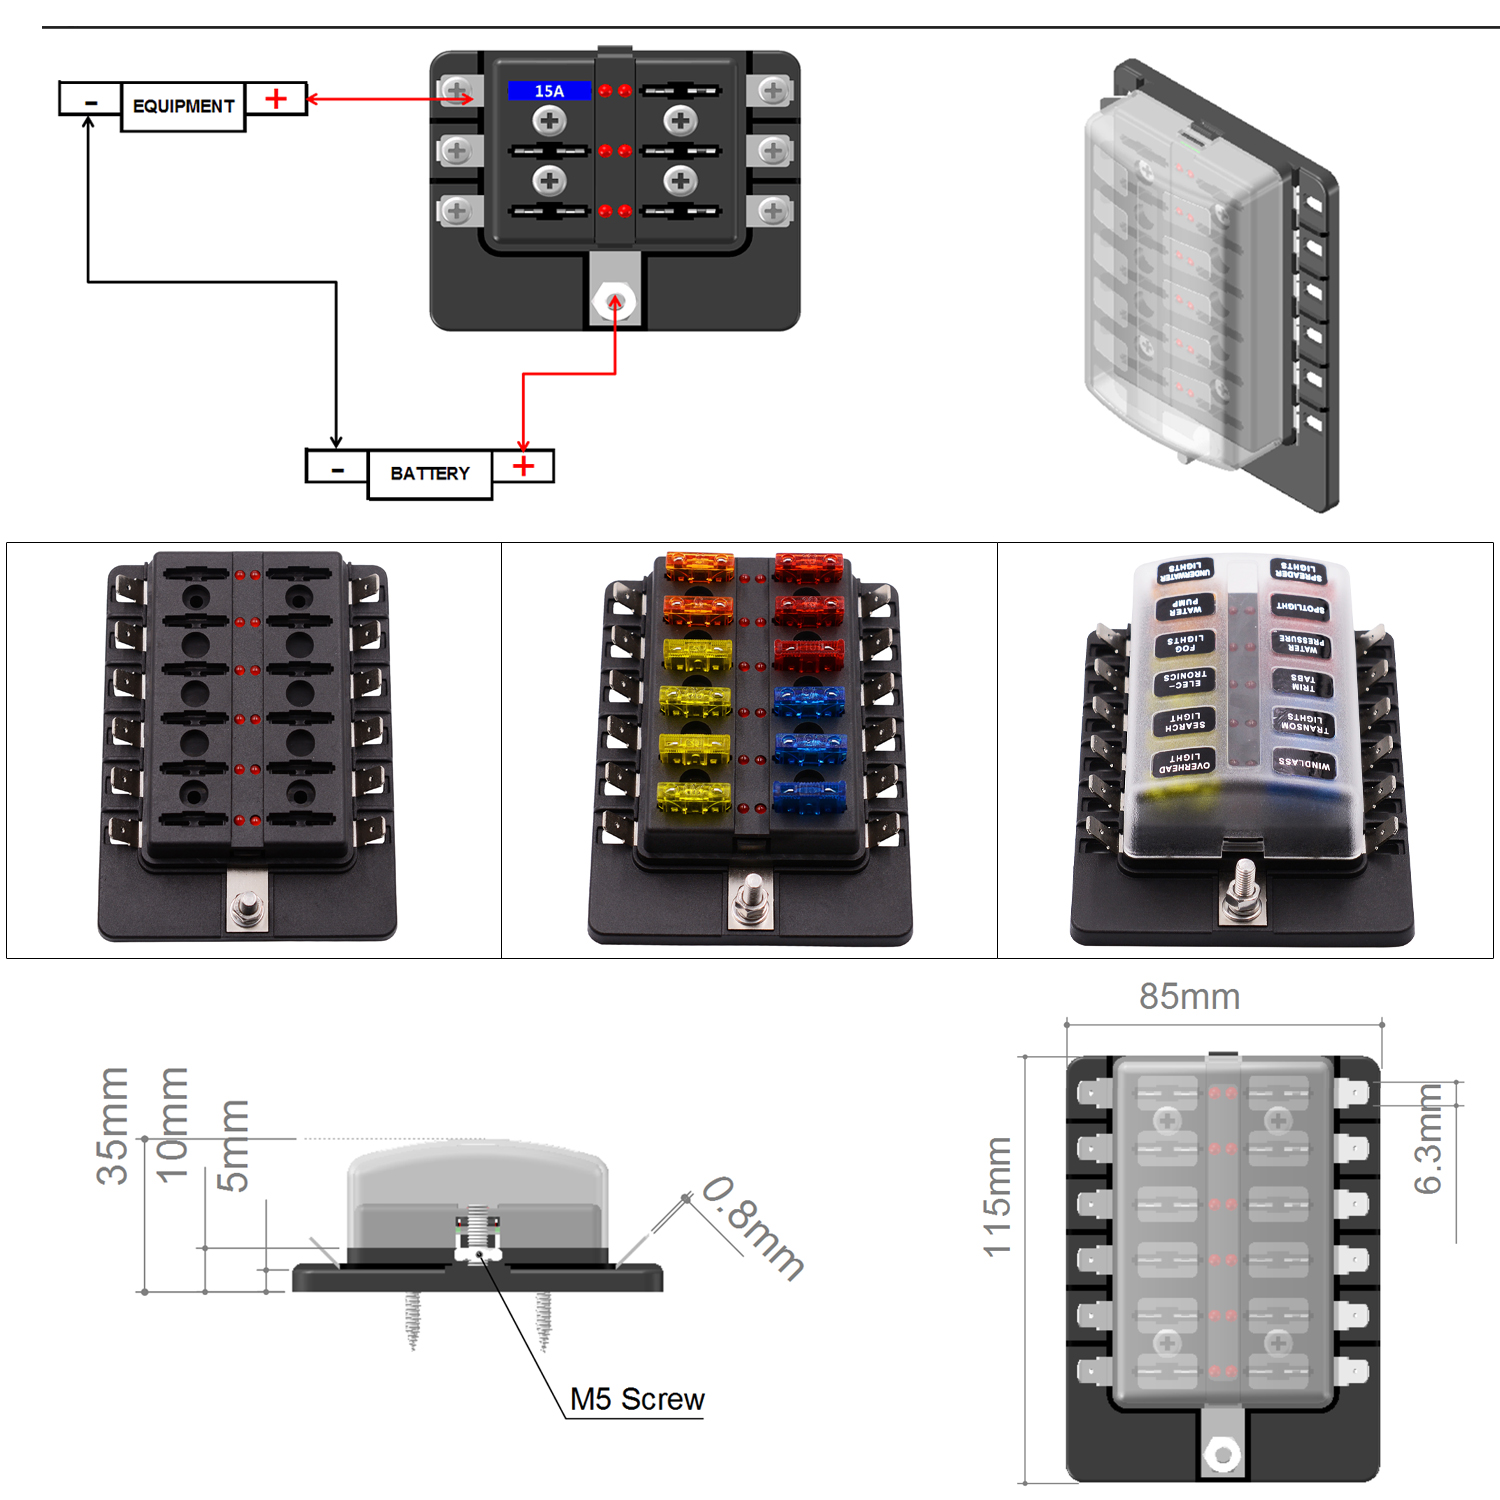 e2ab1243 1e28 4498 a353 073cf0f9efcc imars cs 579b4 12 way blade fuse box holder with led warning light  at panicattacktreatment.co